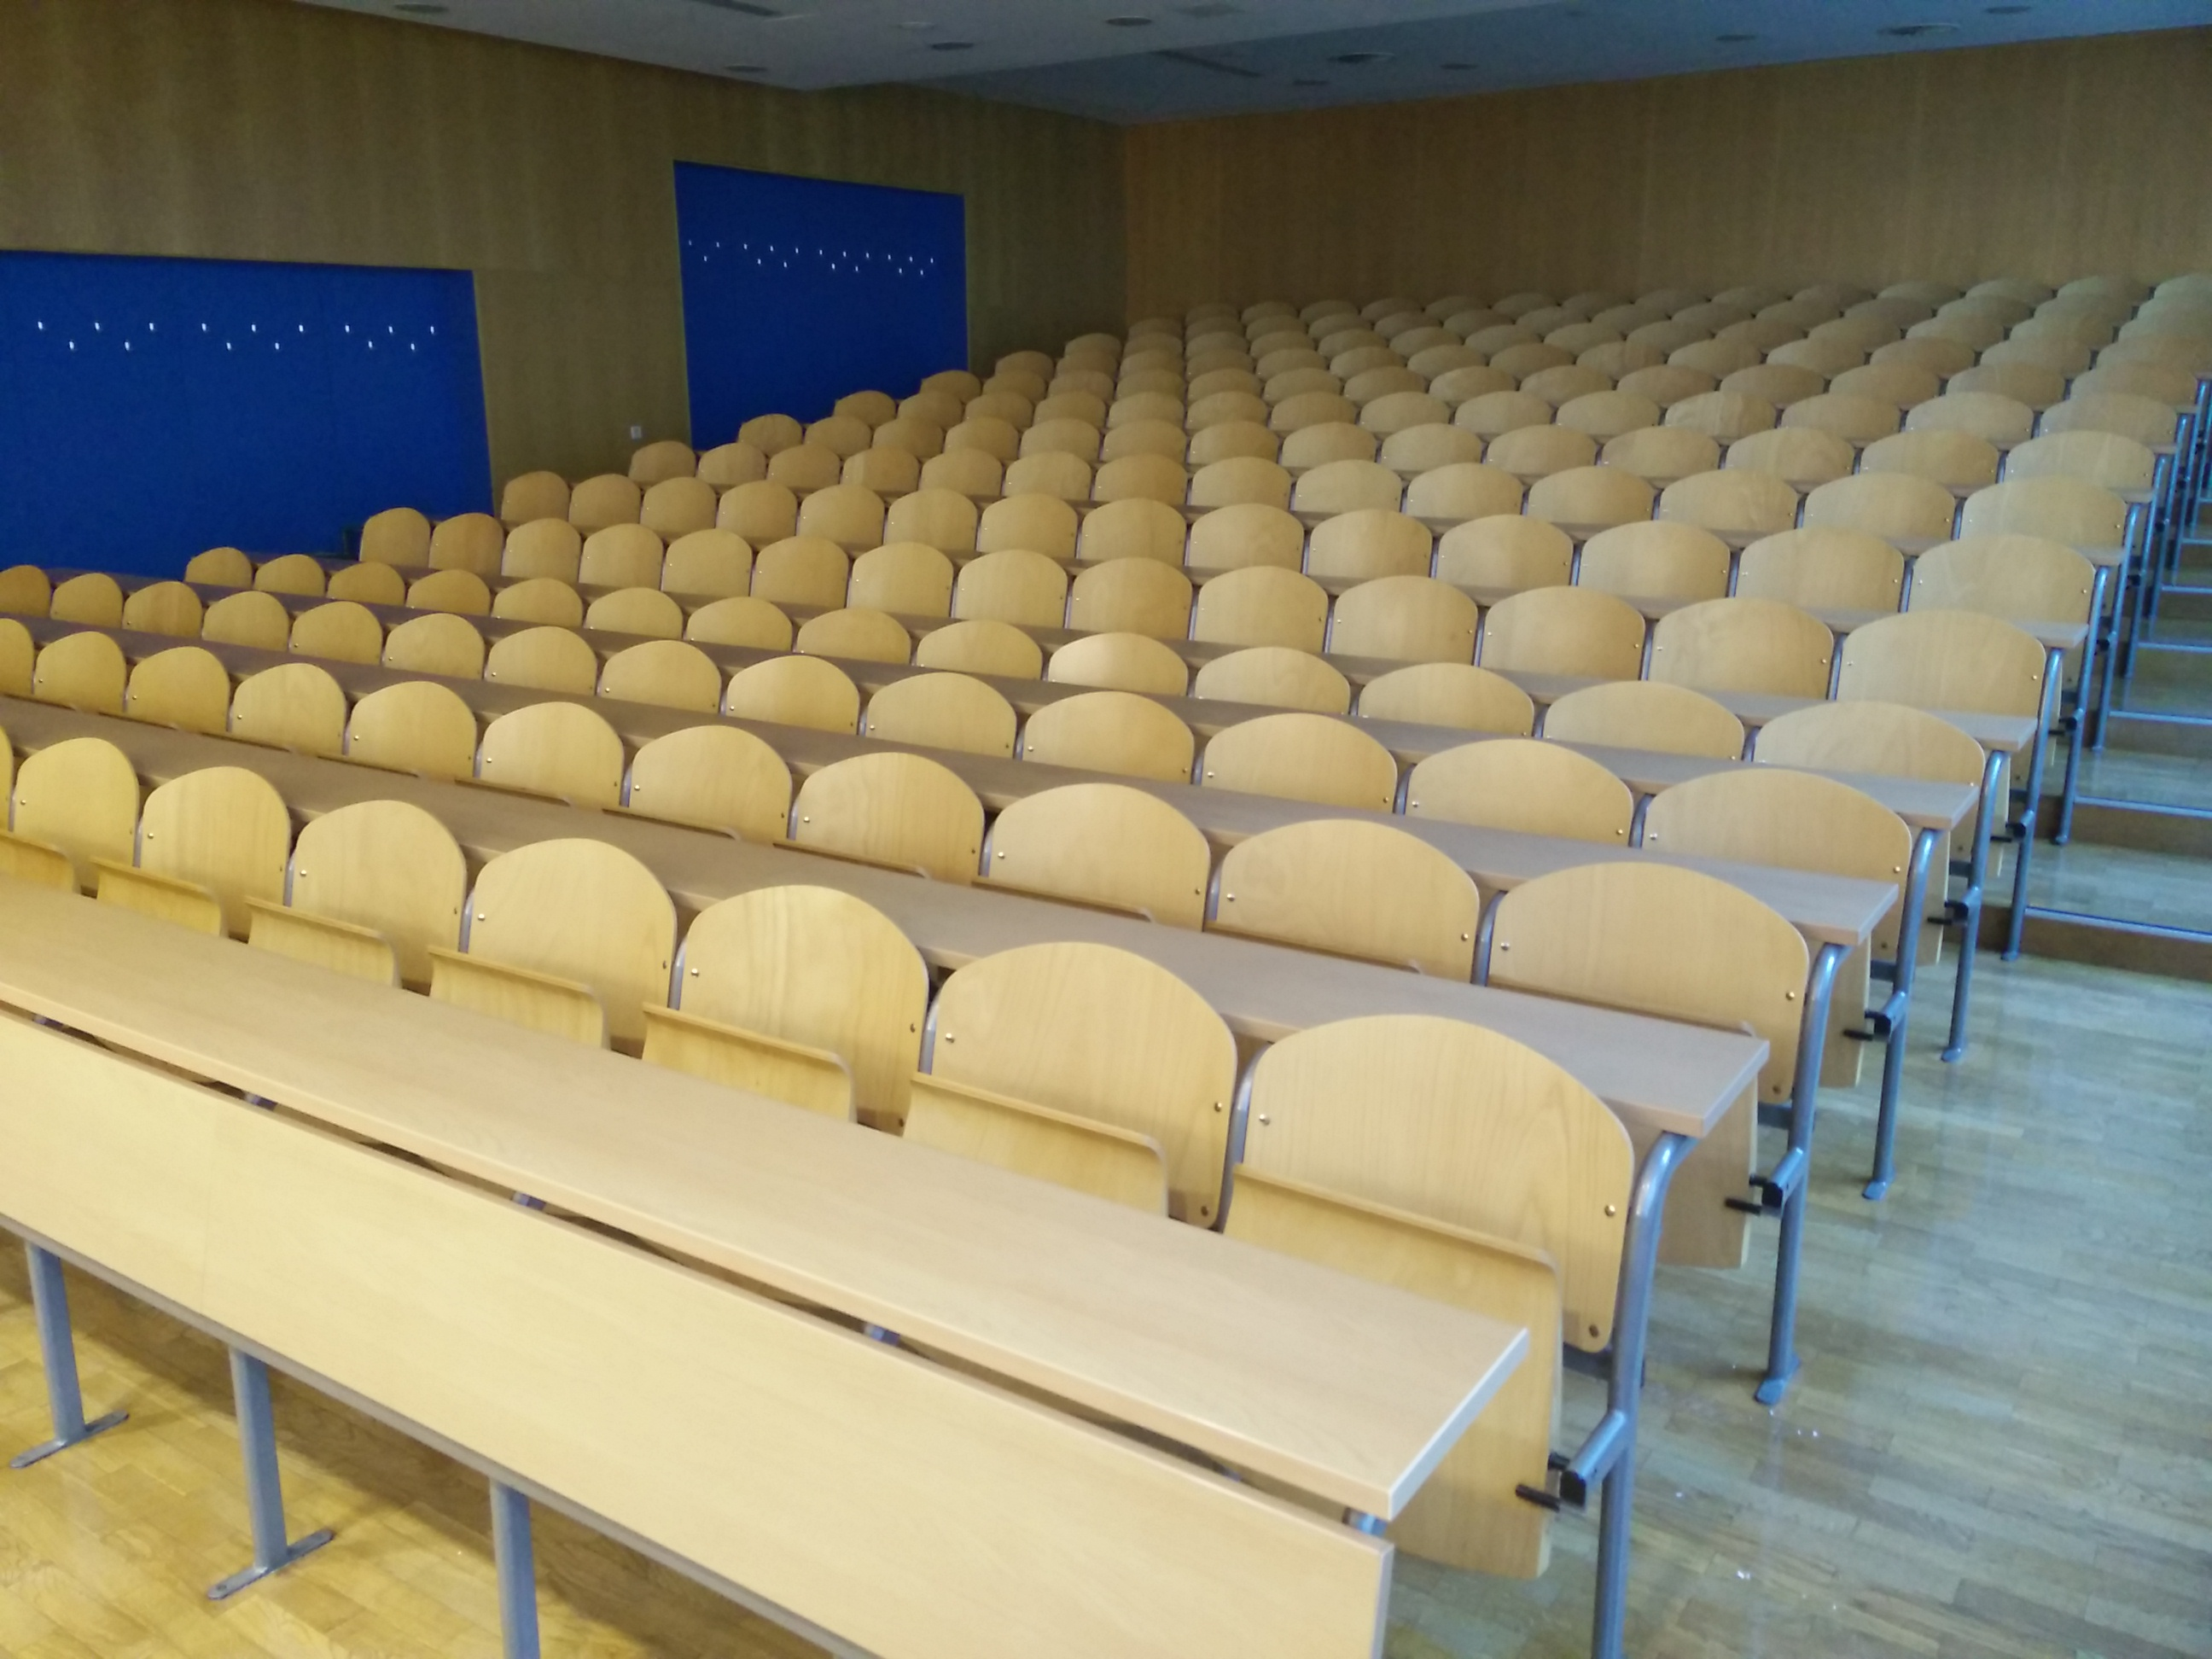 Lecture rooms.